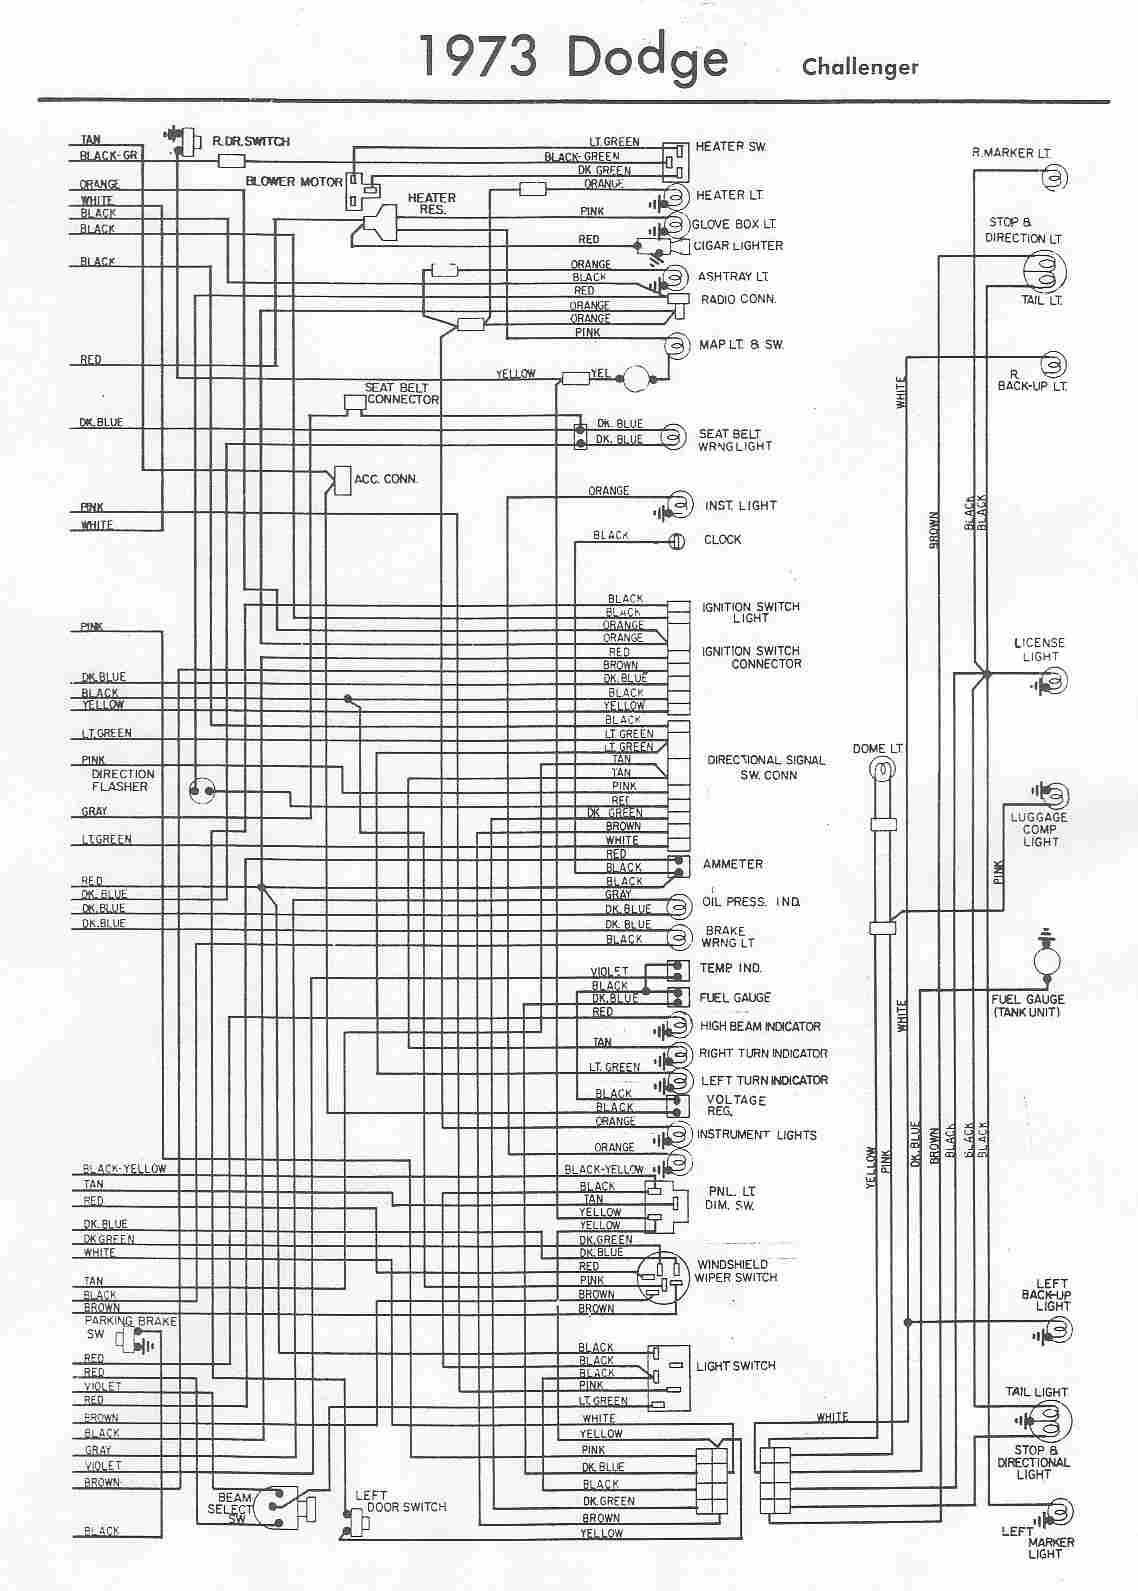 1970 Challenger Engine Wiring Diagram - Electrical Work Wiring Diagram •